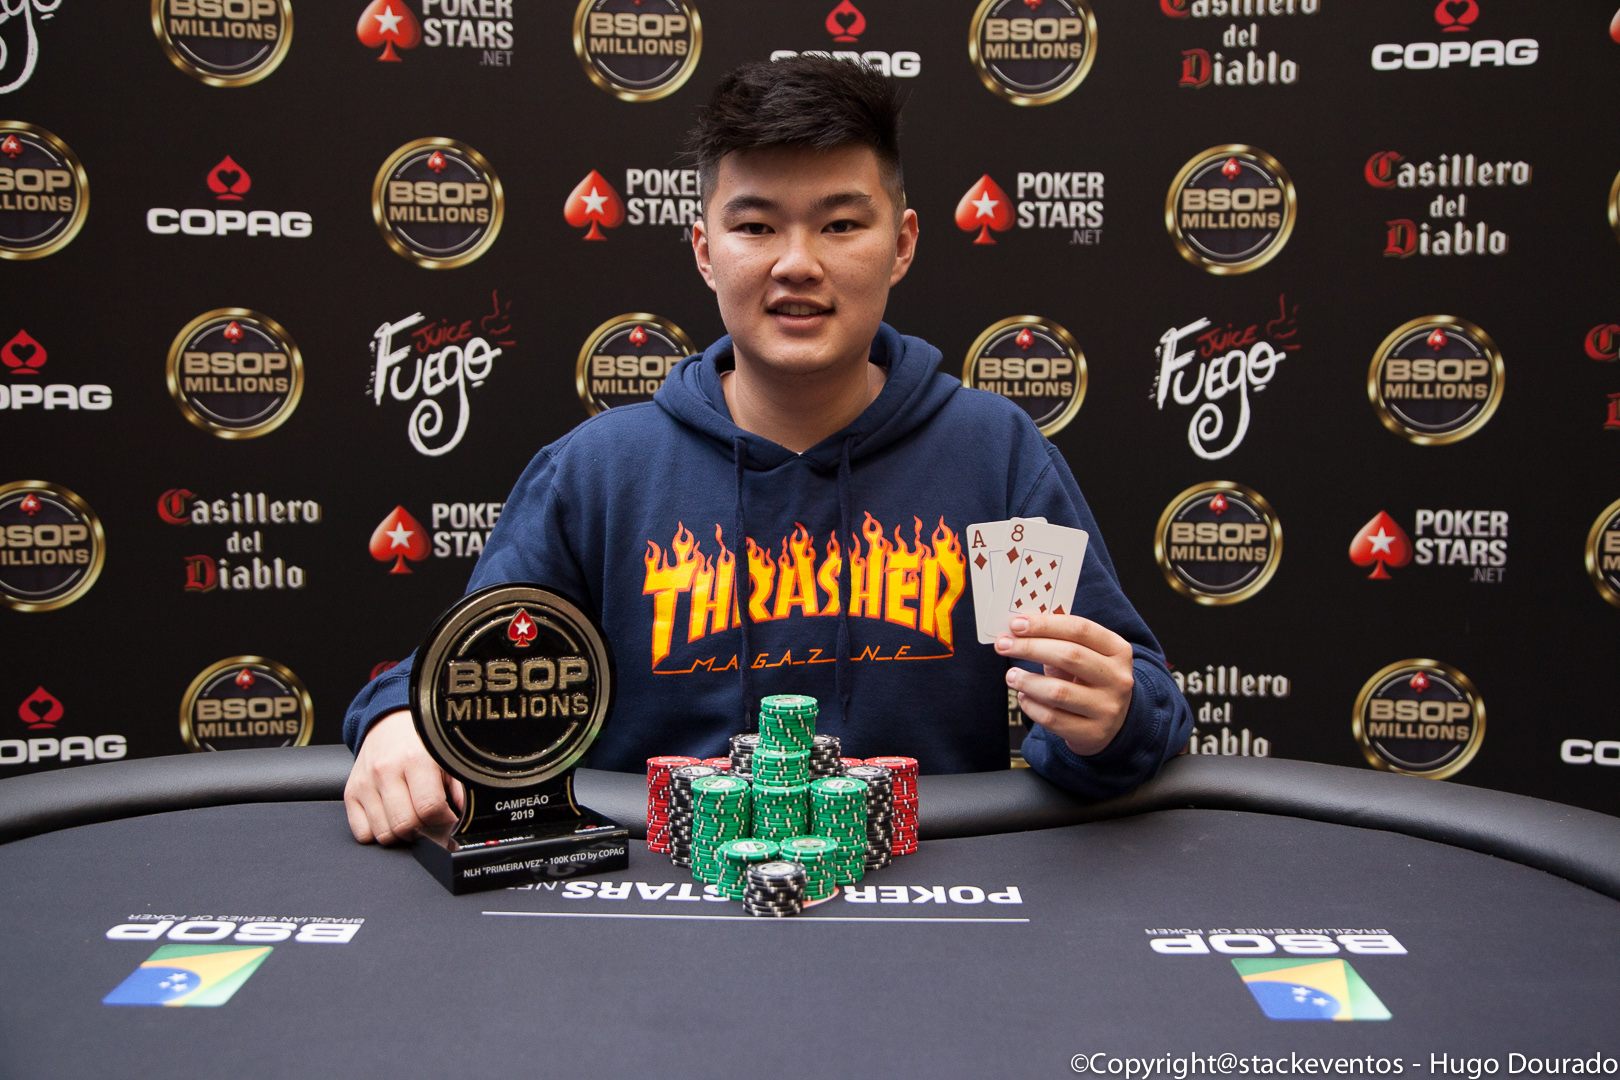 Vinicius Massaru campeão do Primeira Vez by Copag do BSOP Millions